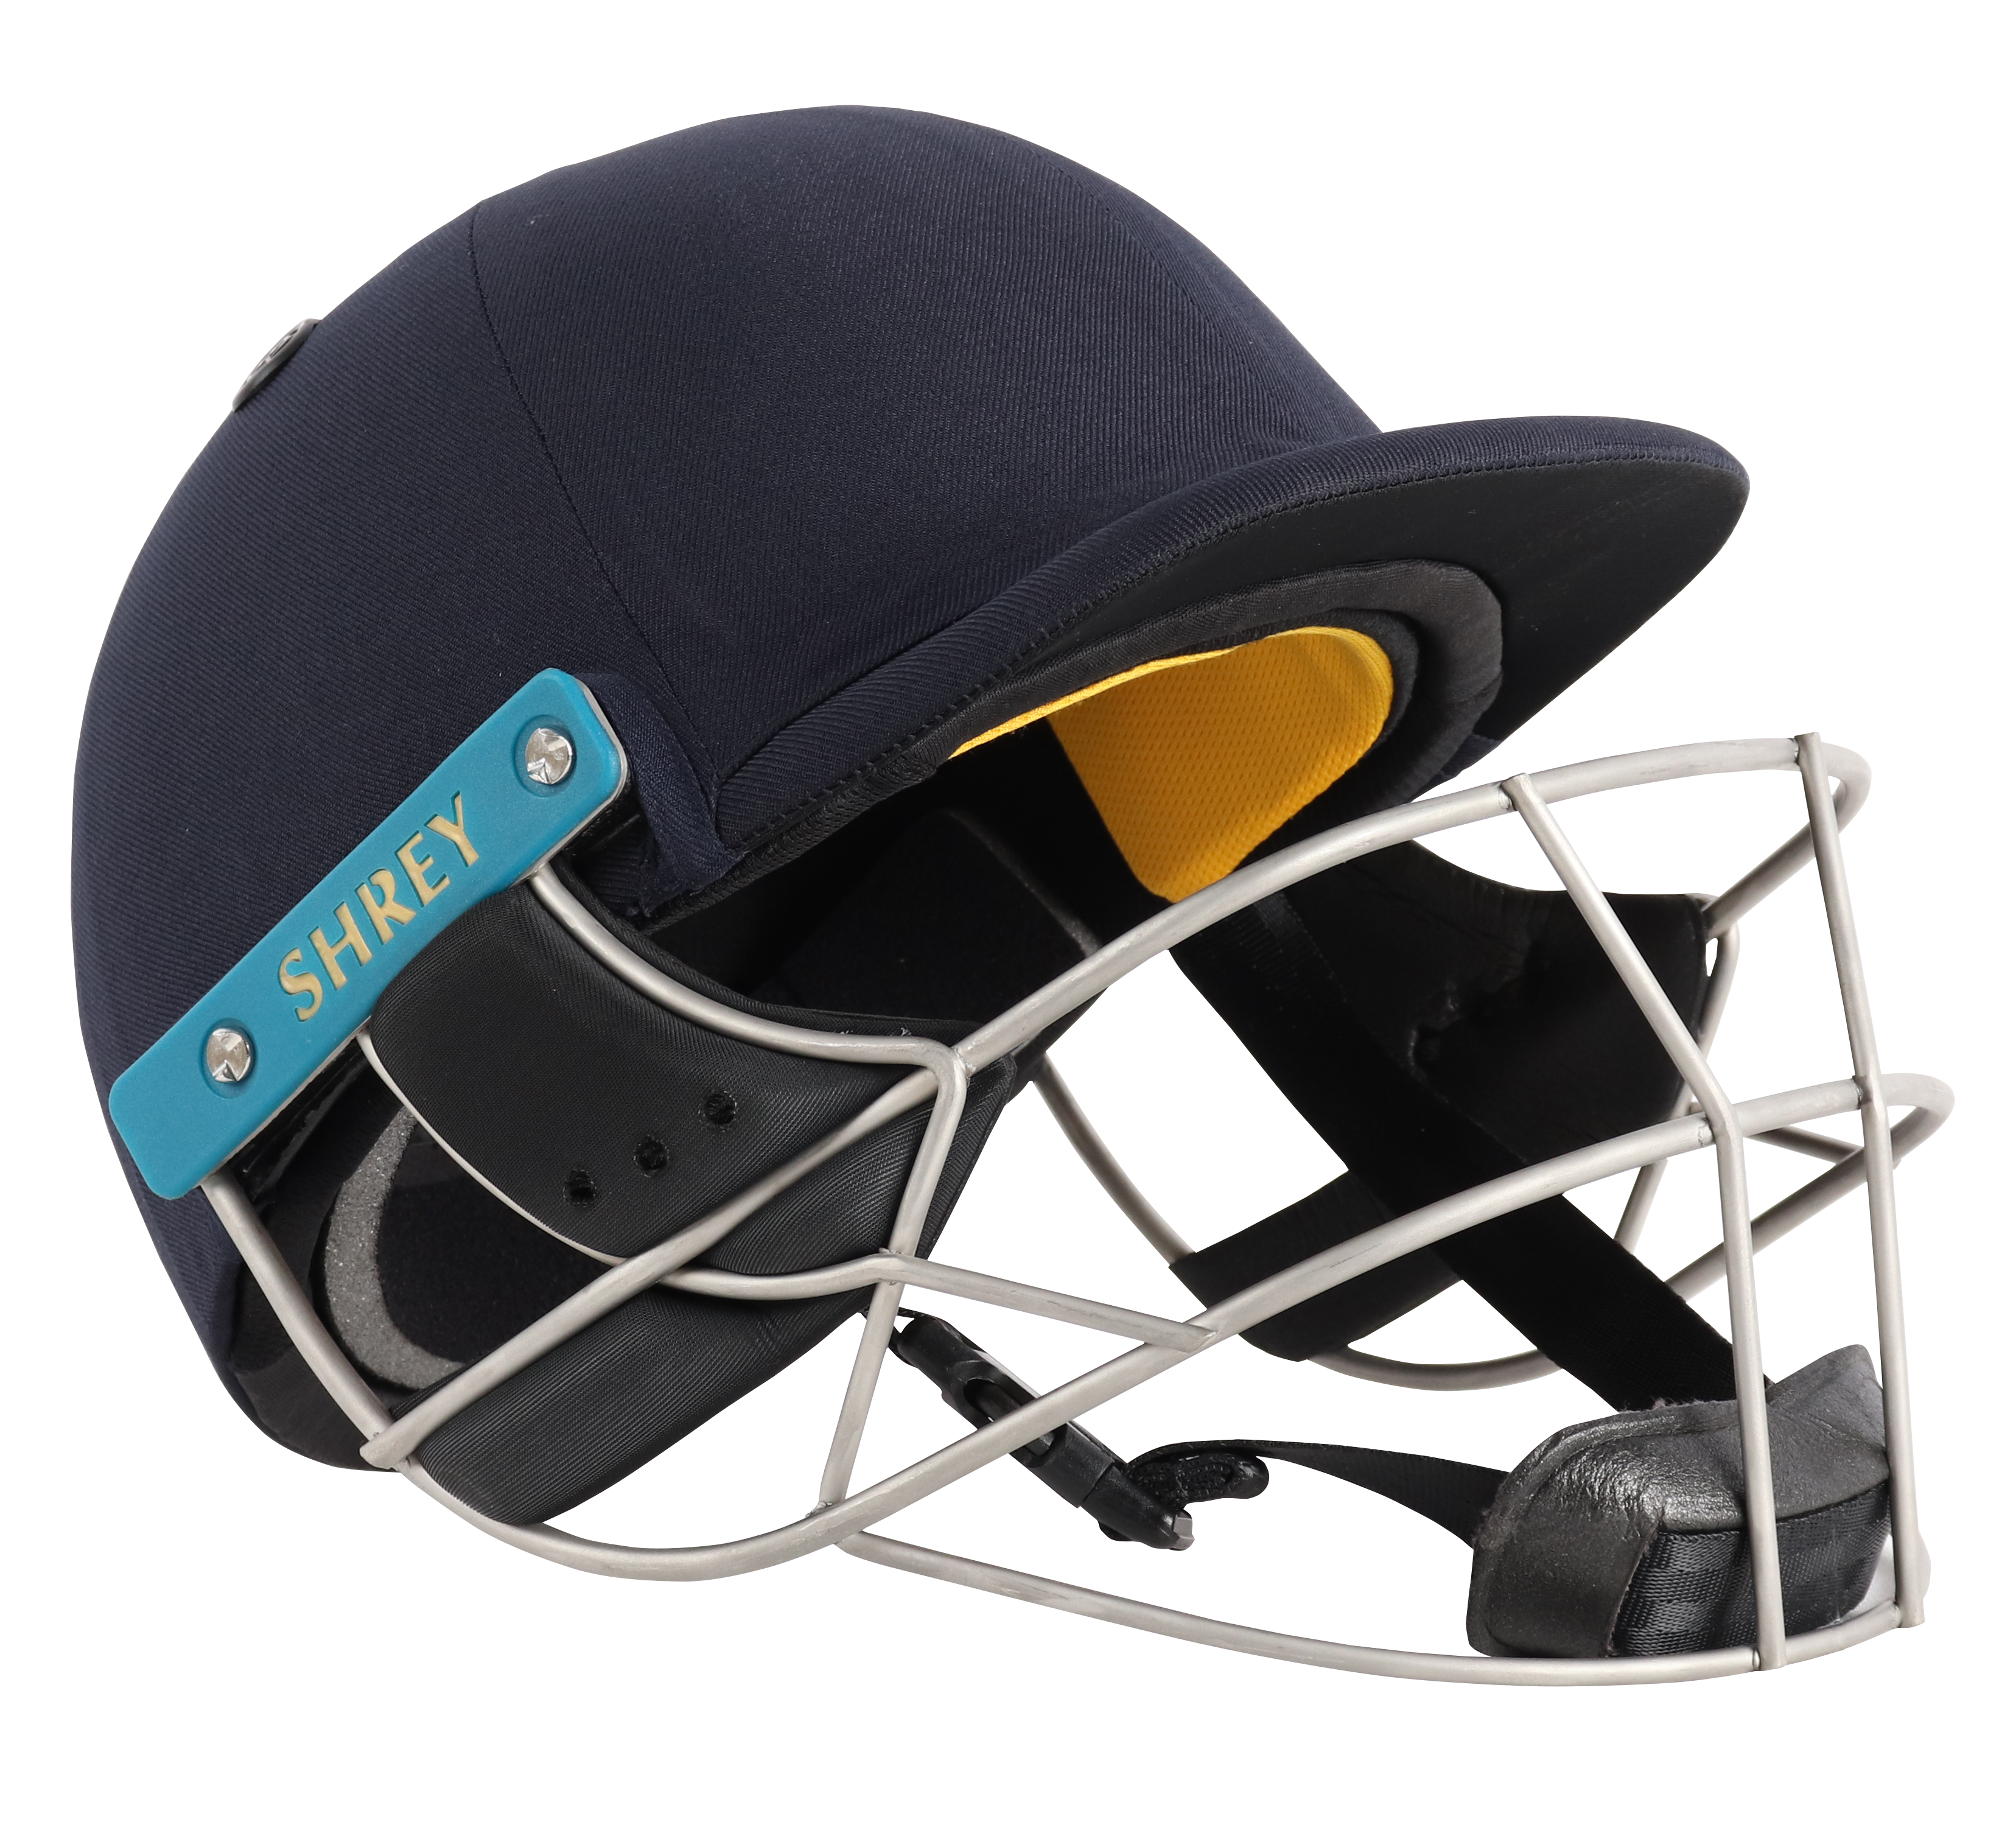 juniors /& Seniors Play Without risk of injury TWS Cricket Ball for Practice and Matches Play Seam,Swing,Bounce